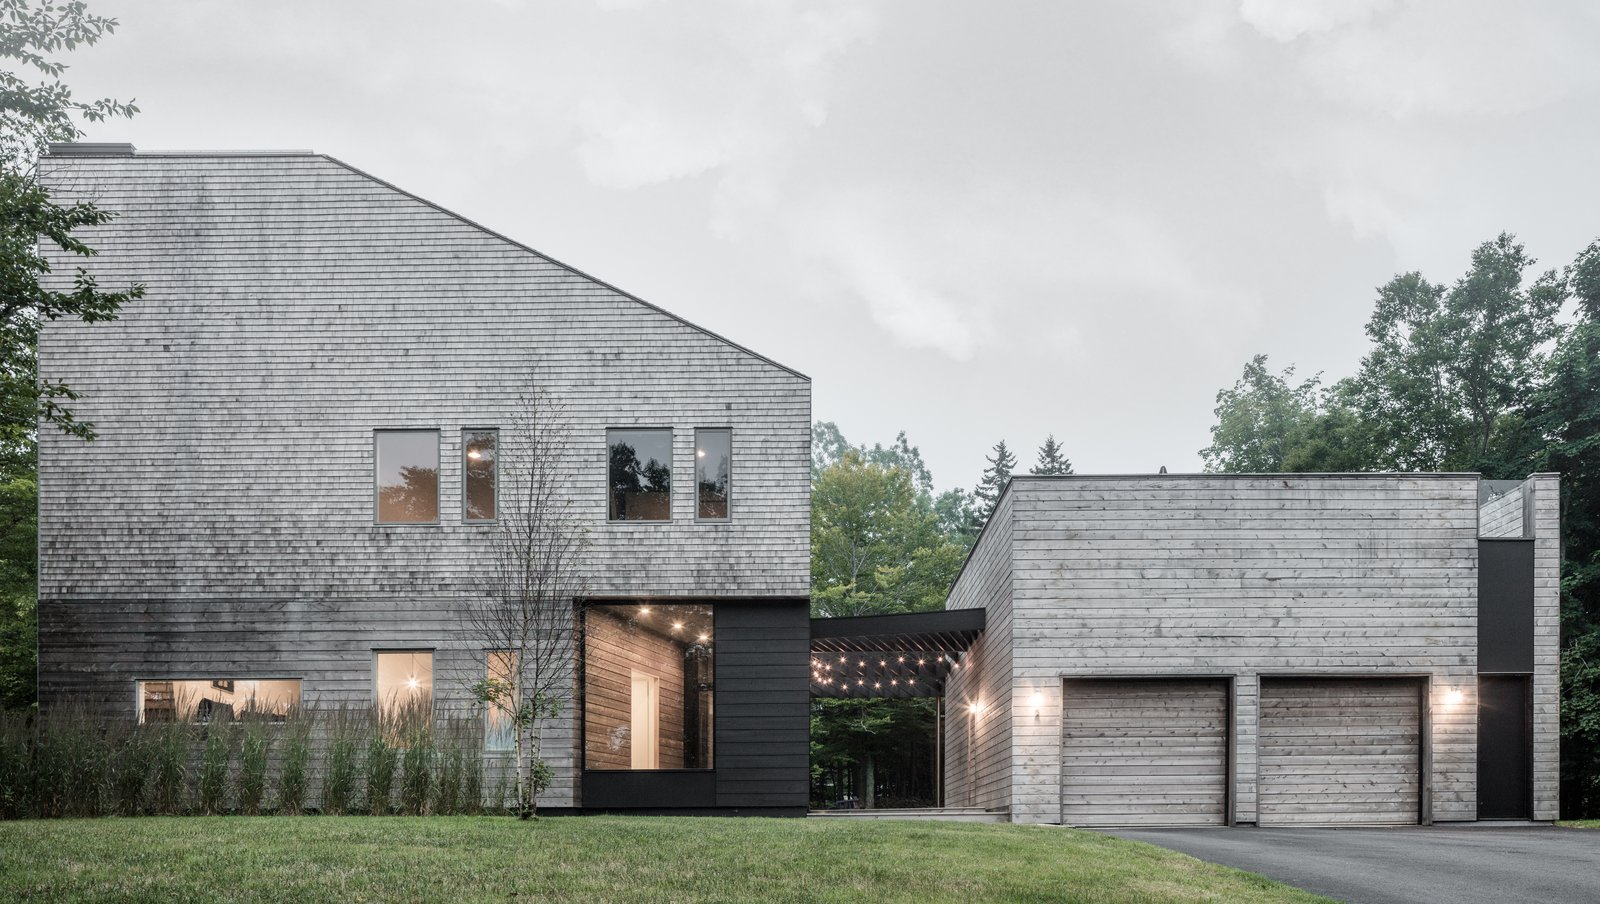 A 34-Foot-Tall Light Well Boosts Creativity in This Cedar-Clad Home For Musicians